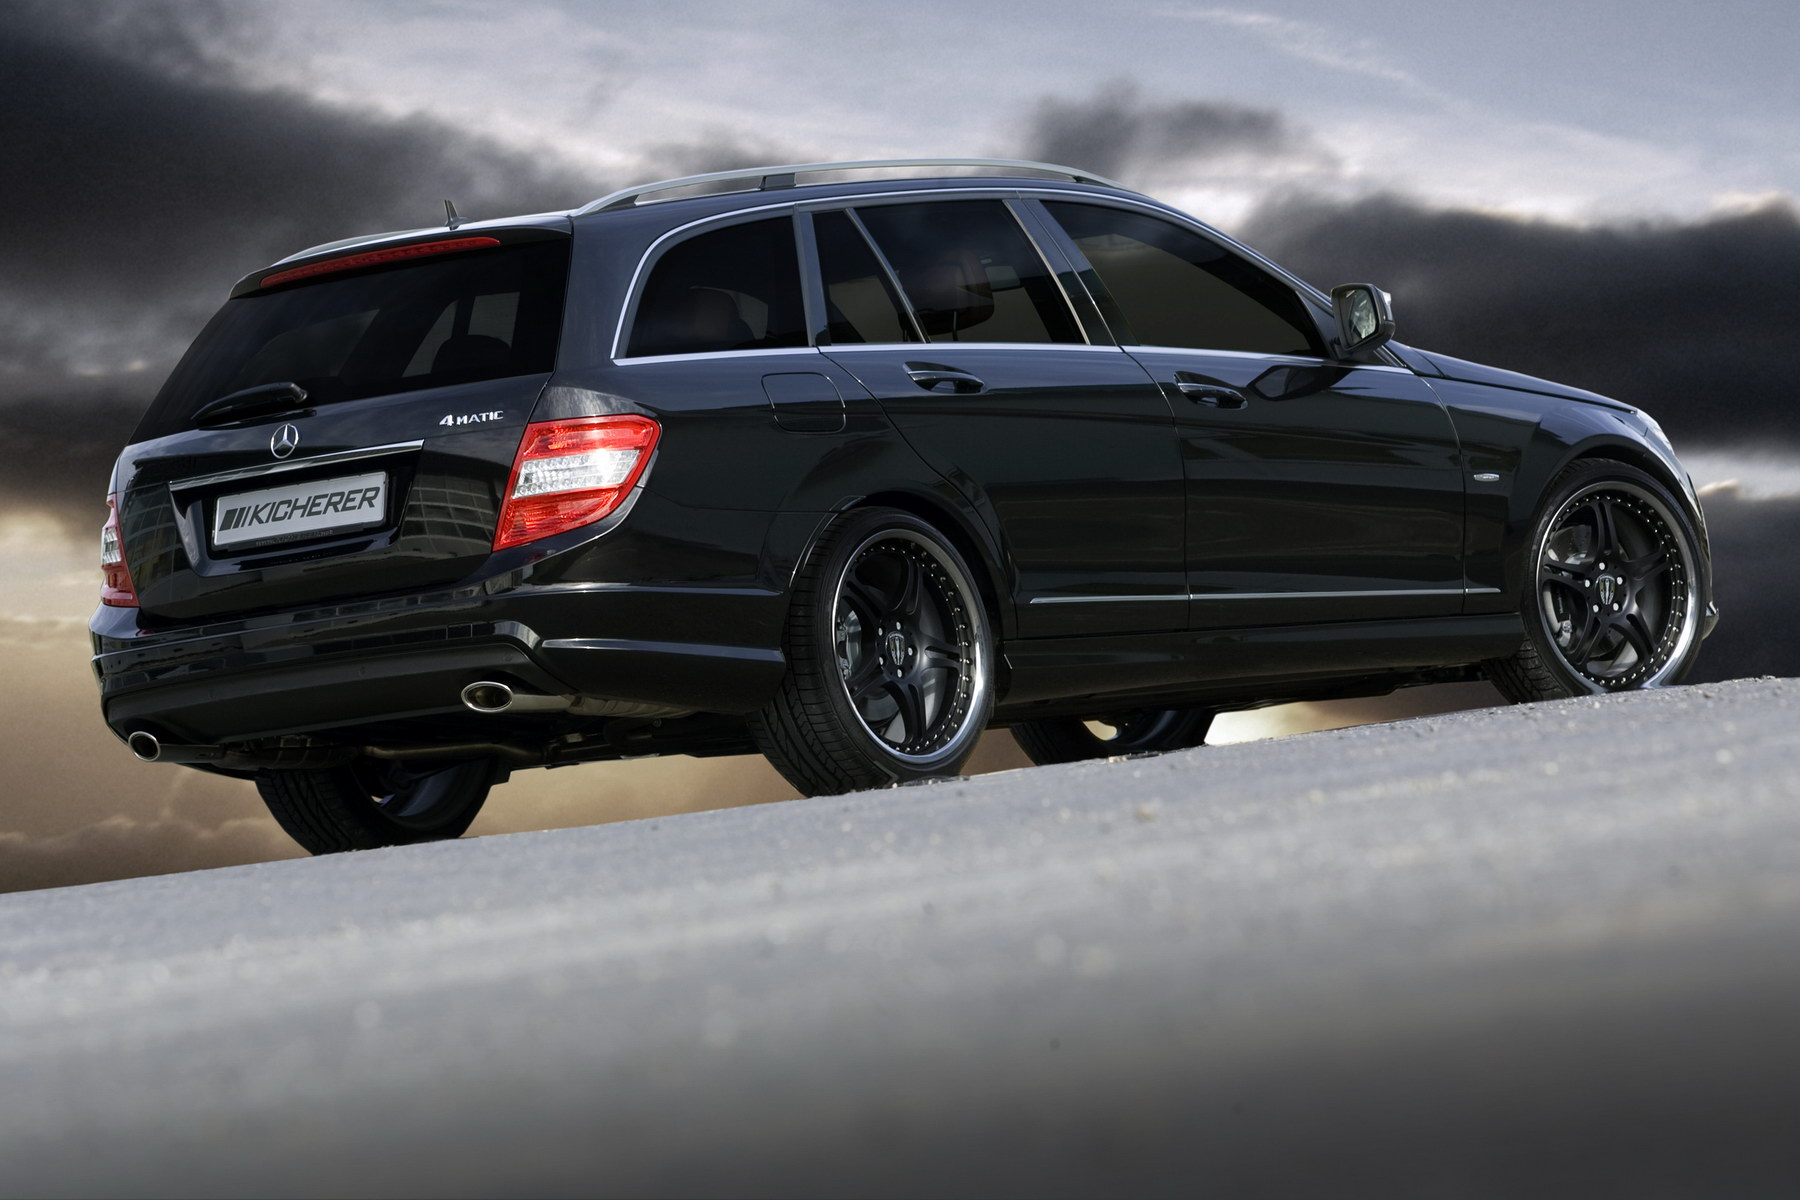 kicherer mercedes benz c320 cdi 4 matic photos photogallery with 5 pics. Black Bedroom Furniture Sets. Home Design Ideas